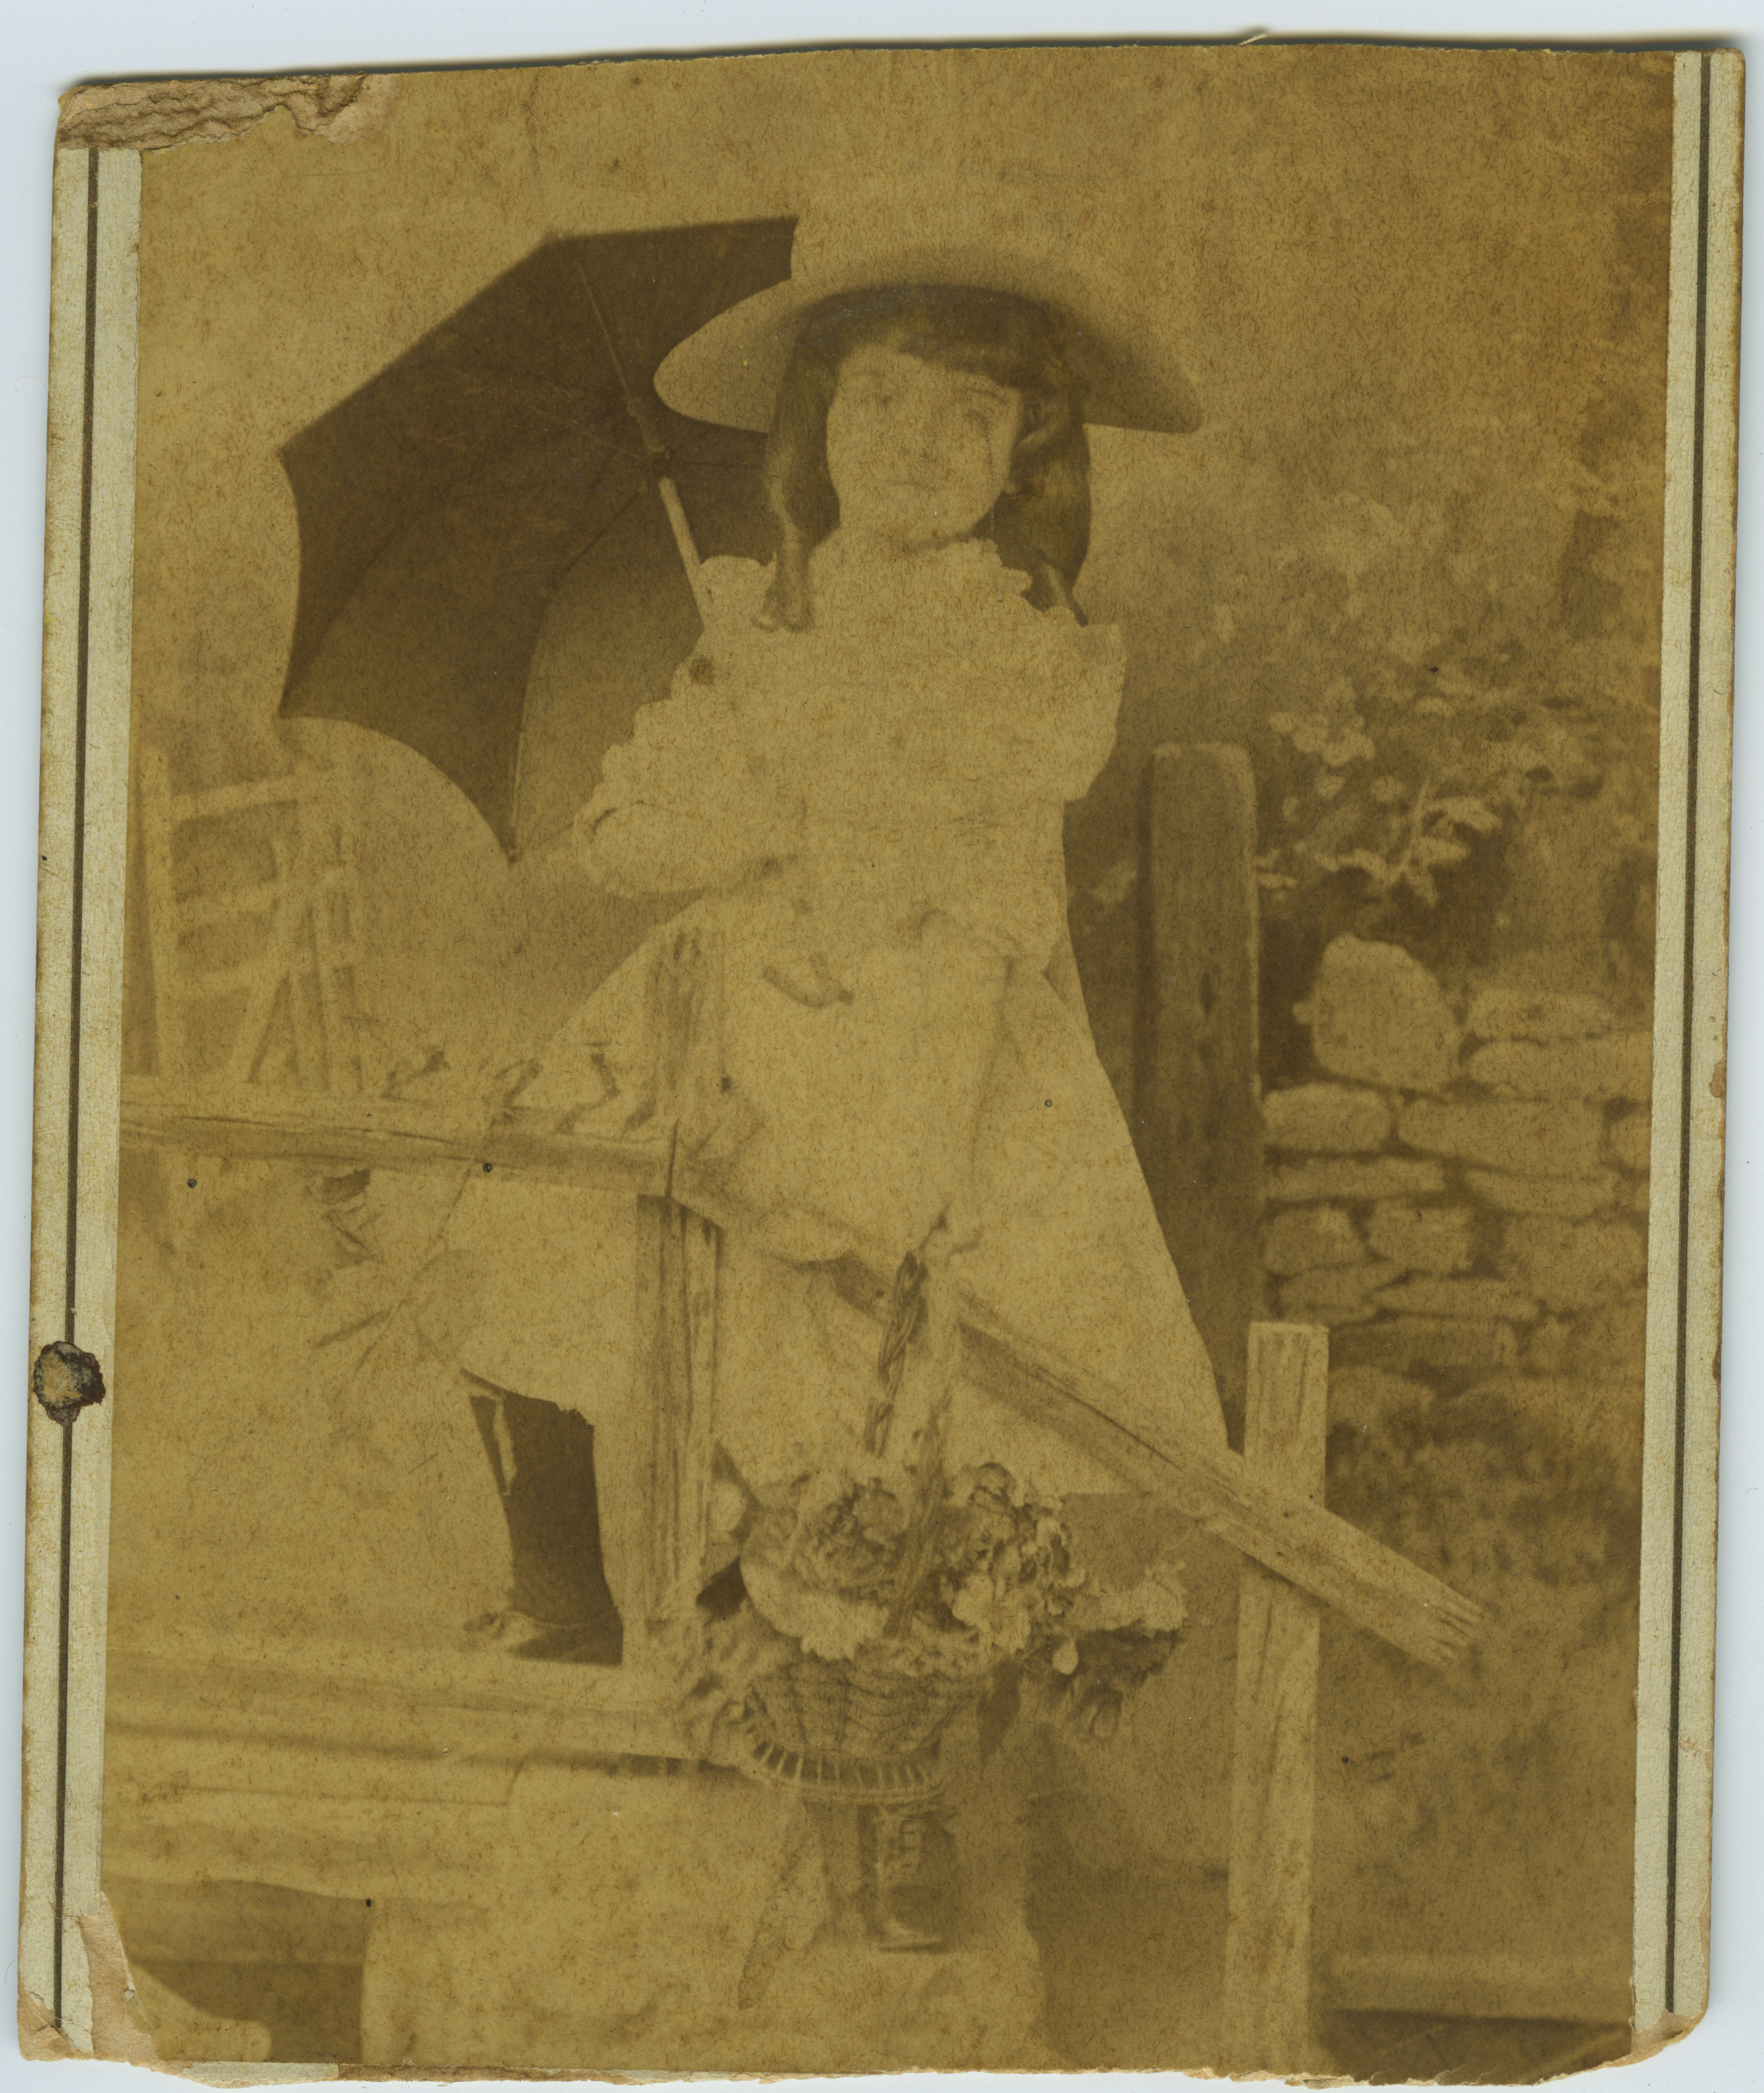 Early Photographs of Mana-Zucca   FIU Special Collections